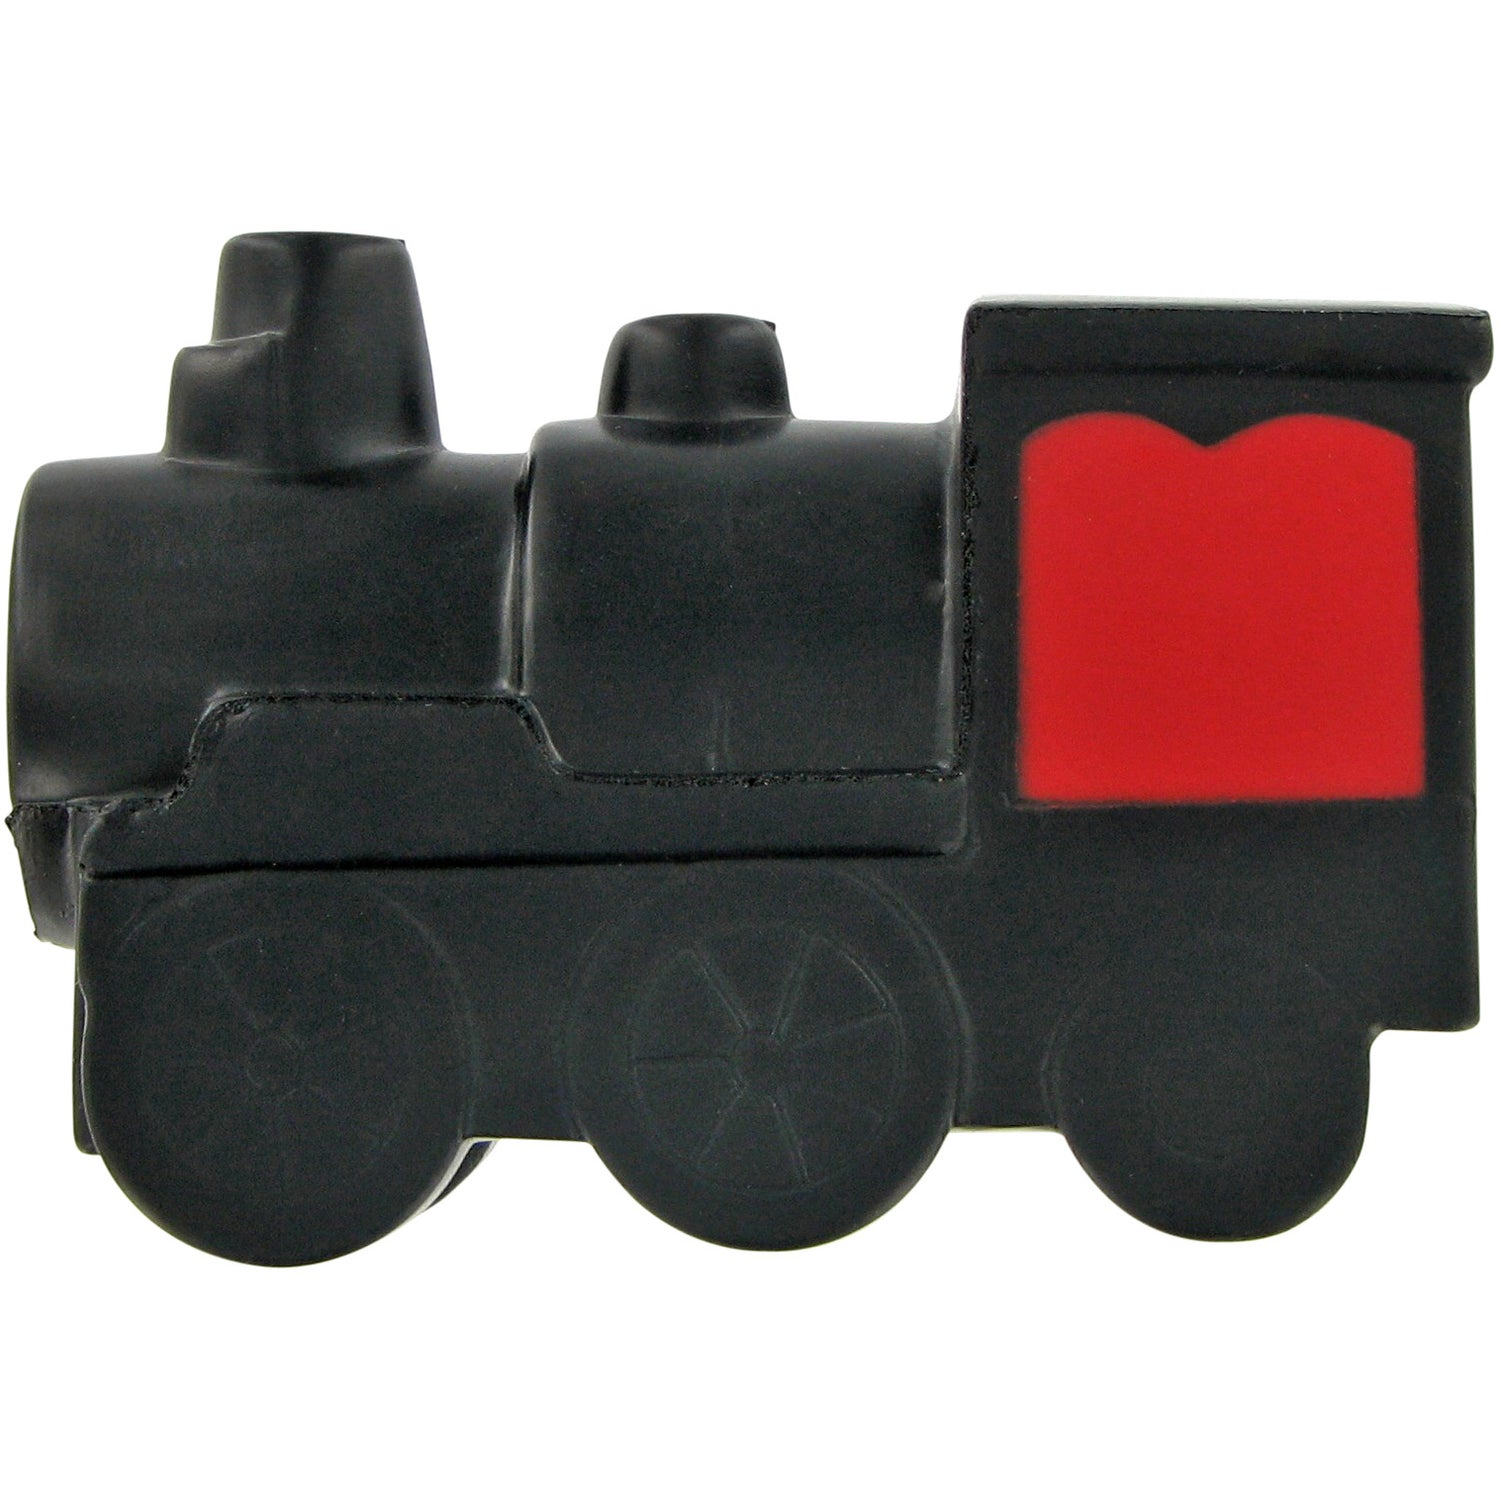 Train Engine Stress Ball